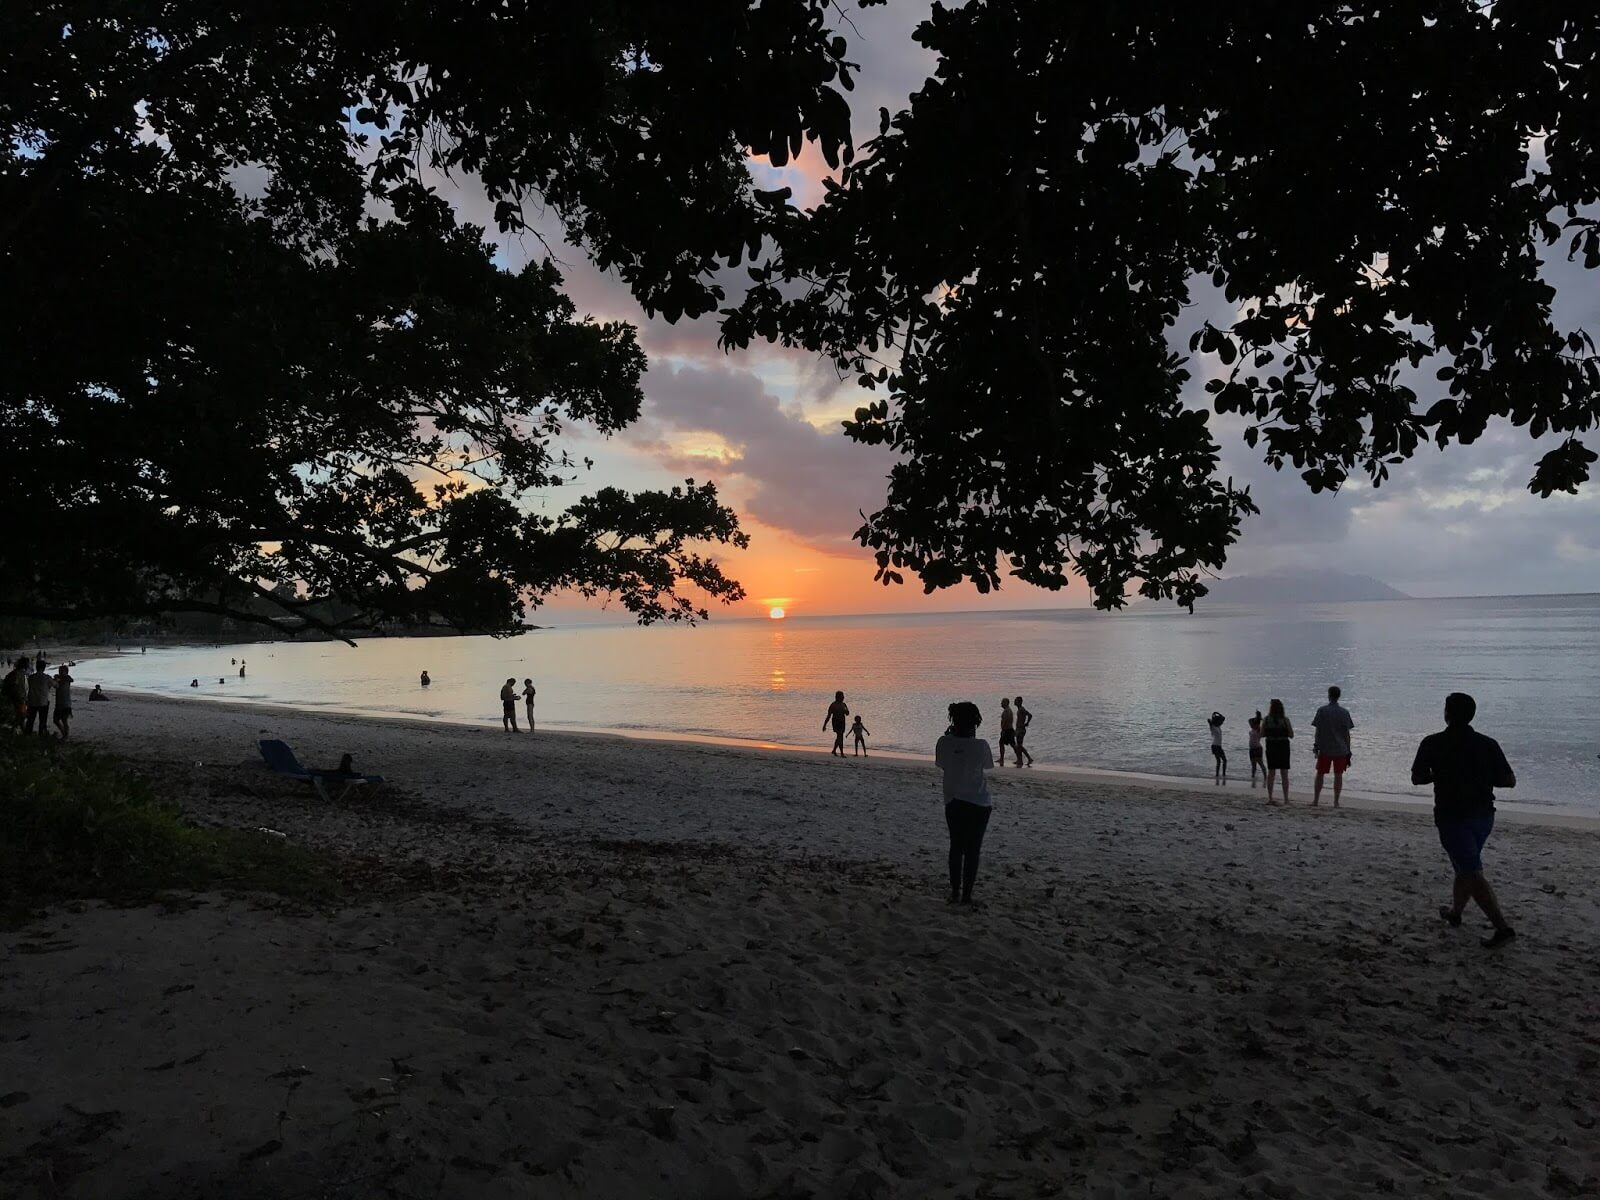 Sunset at Beau Vallon Beach in Seychelles